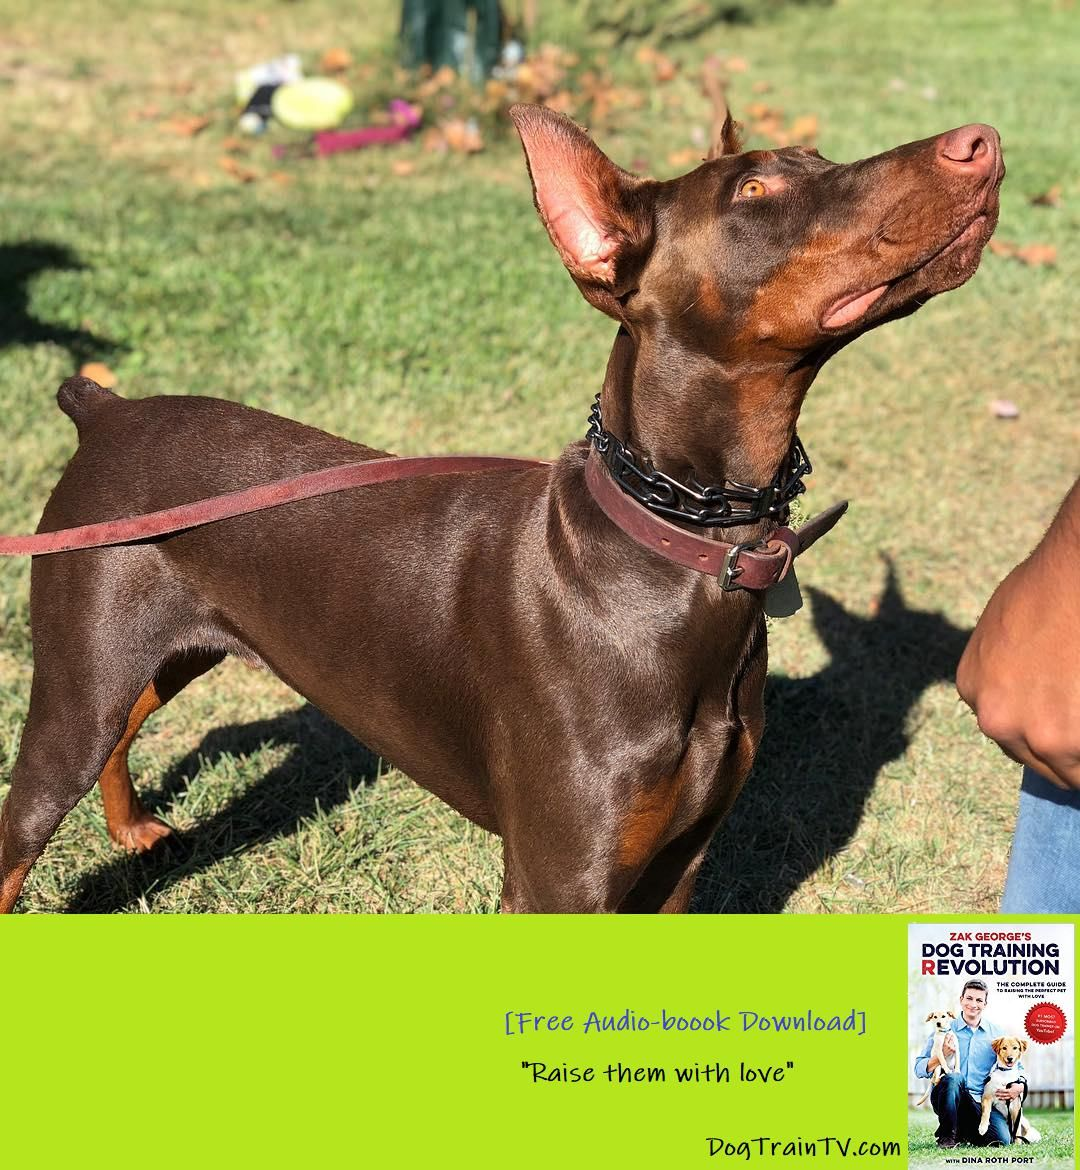 Look At This Stunning Young Dog Had A Great Session With Kiloh The